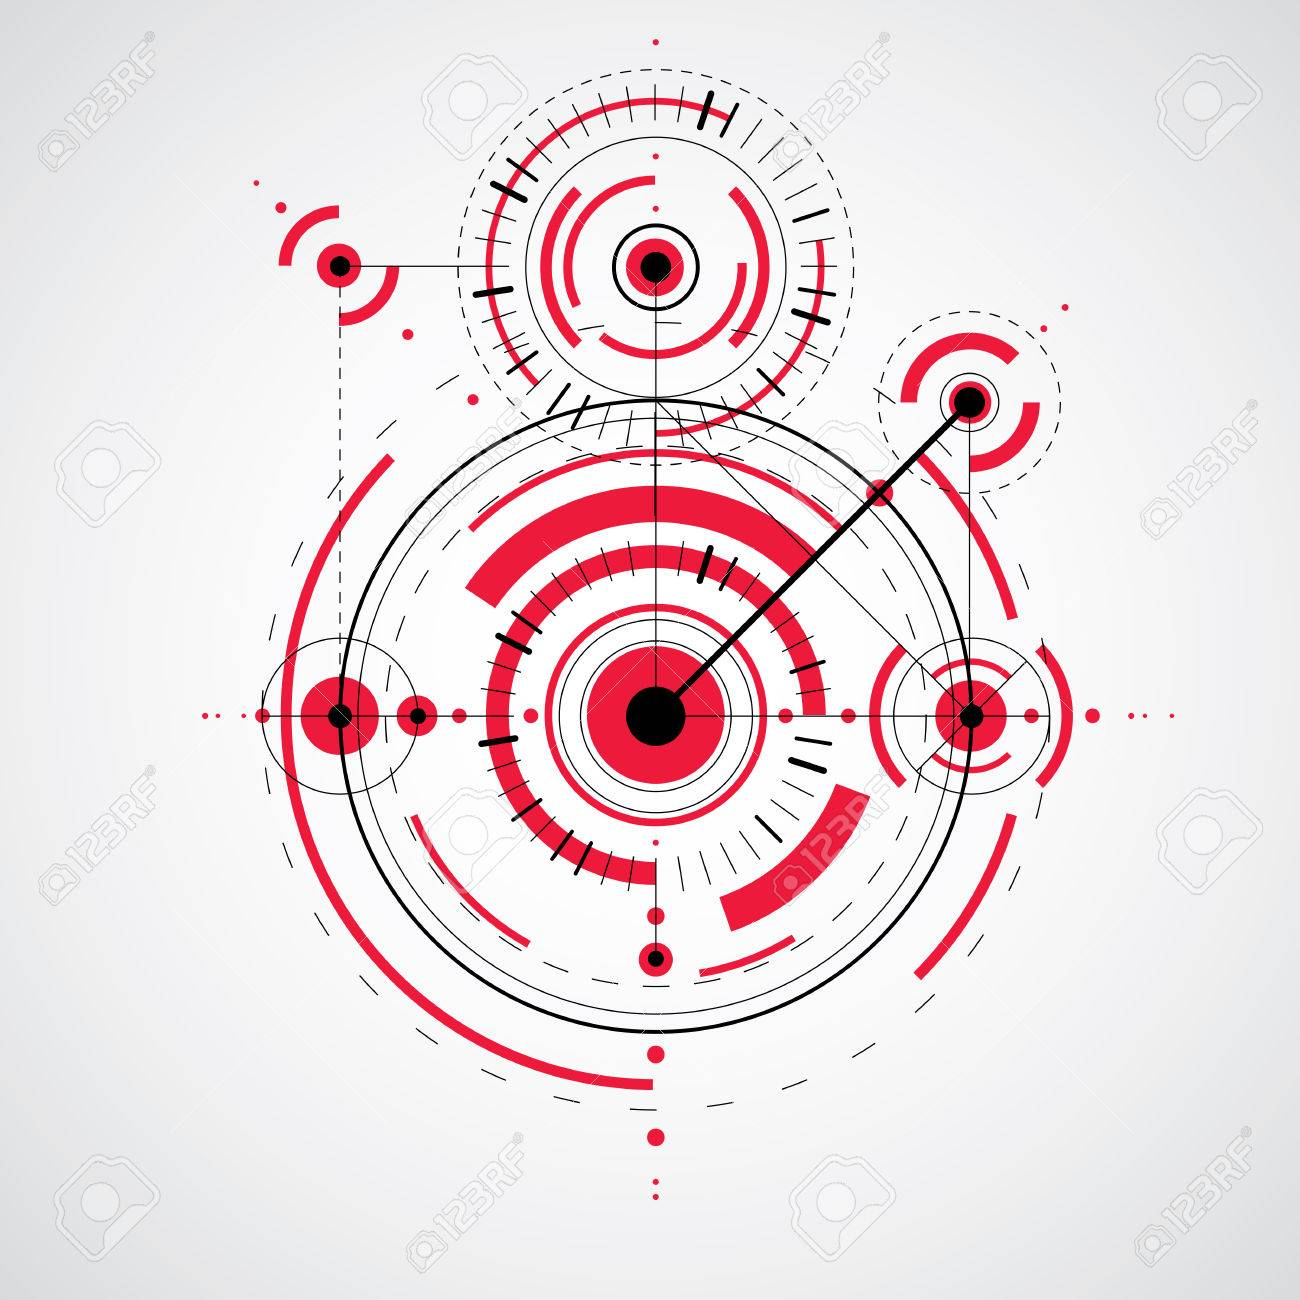 Technical drawing made using dashed lines and geometric circles vector wallpaper created in communications technology